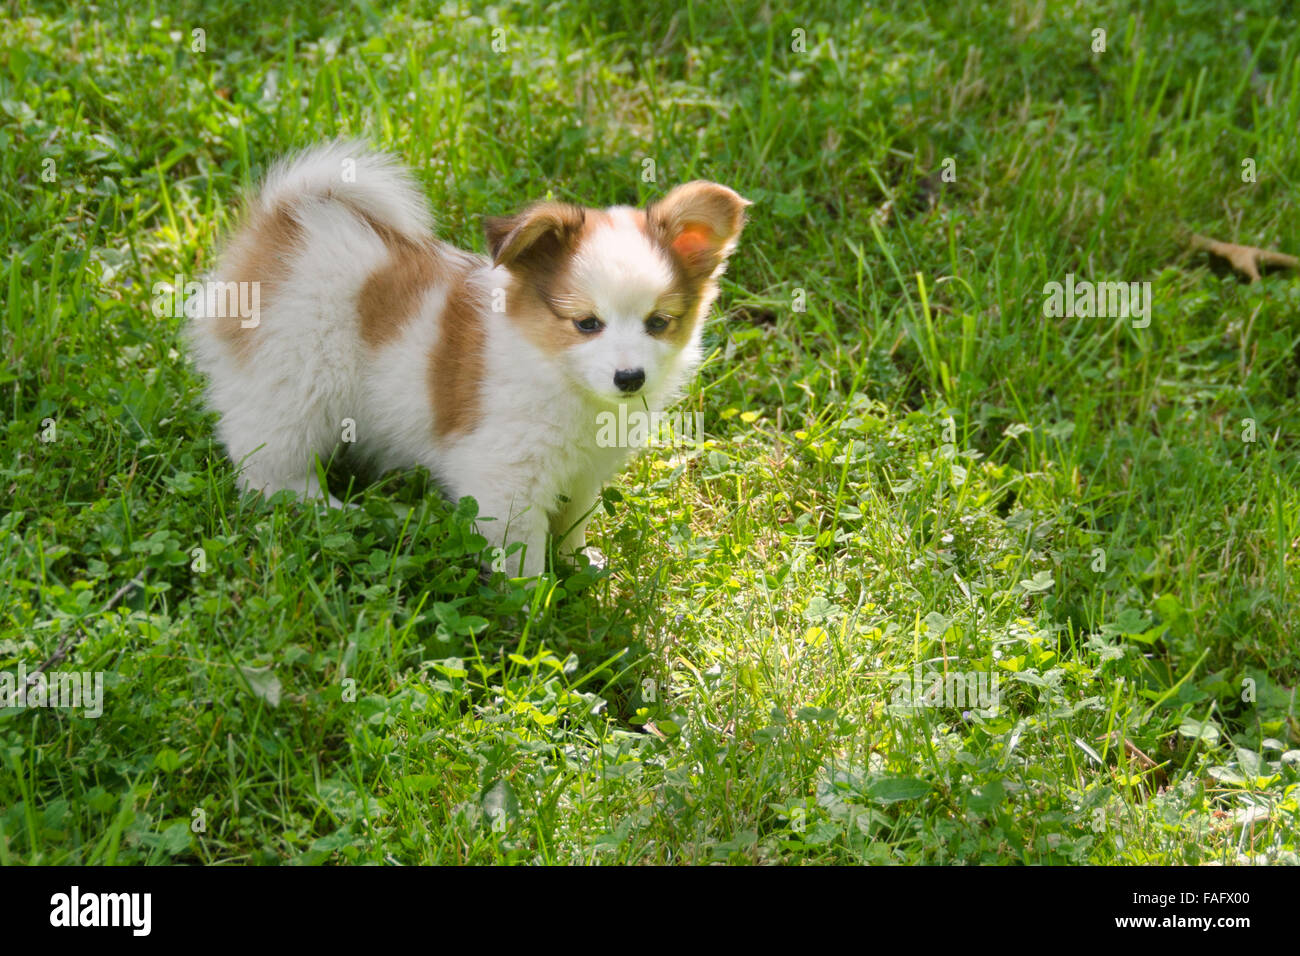 brown and white puppy in the grass - Stock Image